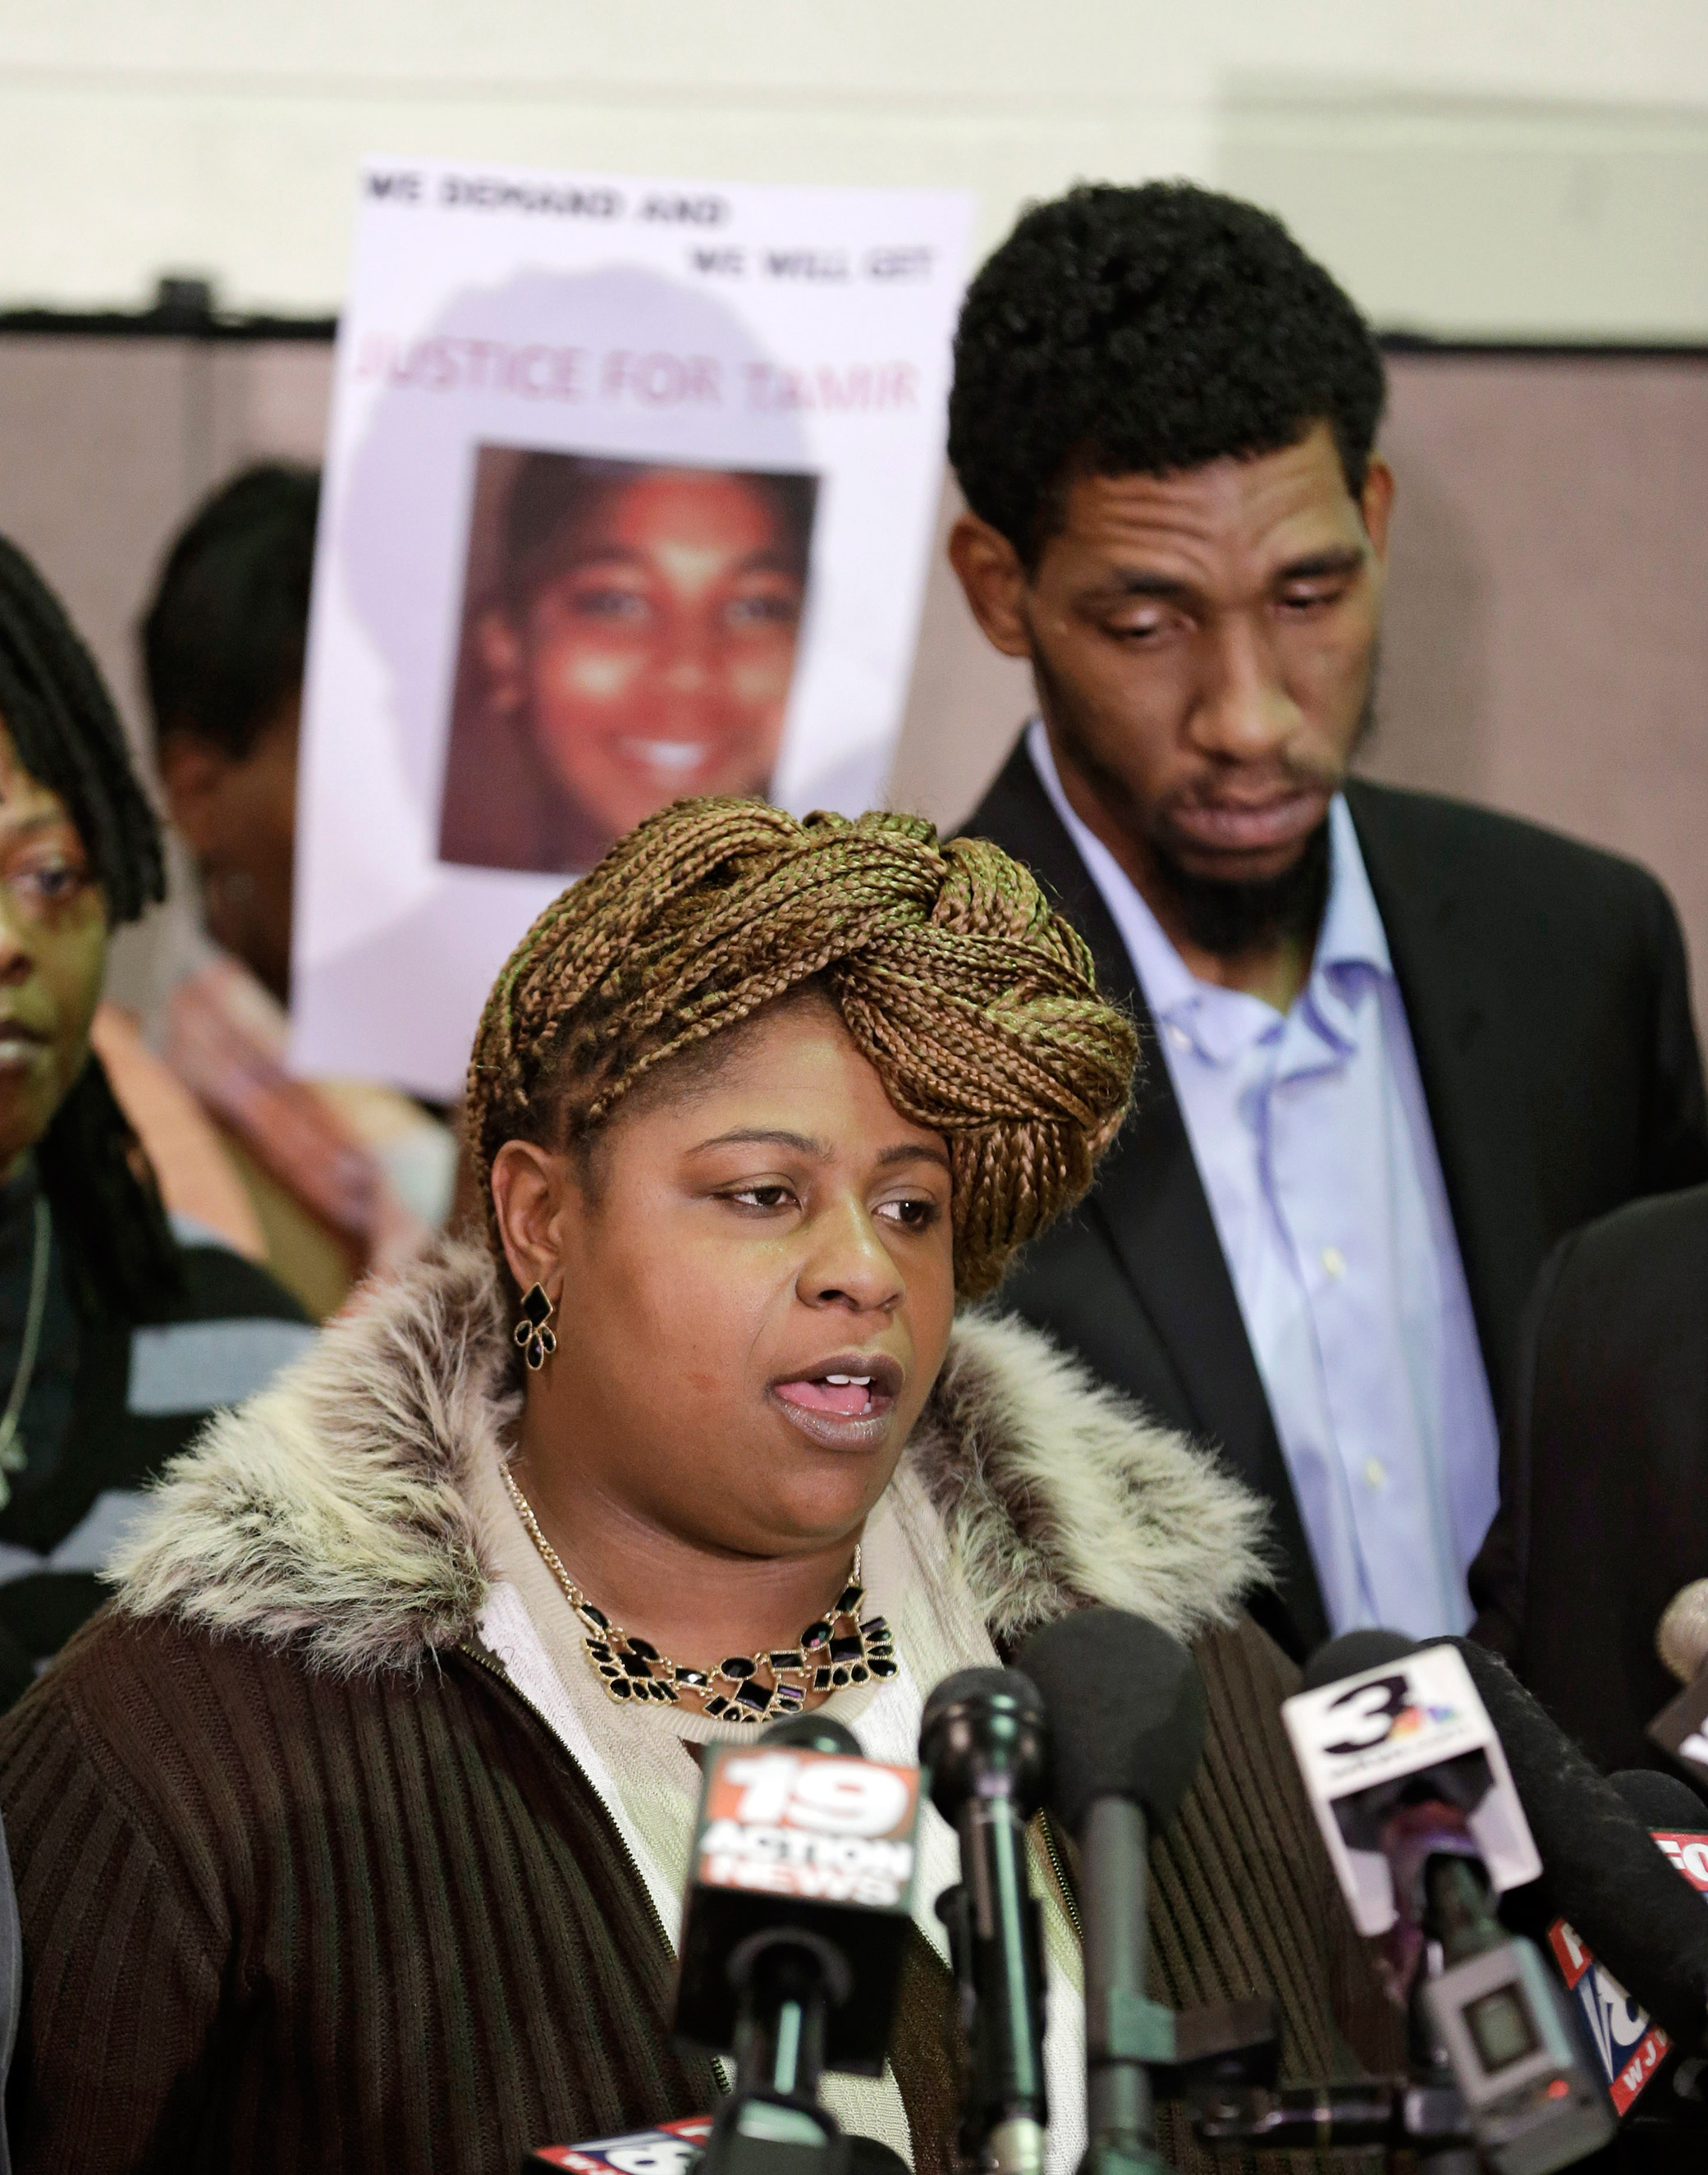 Samaria Rice, mother of Tamir, the 12-year-old boy who was fatally shot by a Cleveland police officer, speaks as Leonard Warner, Tamir's father, listens during a news conference in Cleveland, Ohio, Dec. 8, 2014.